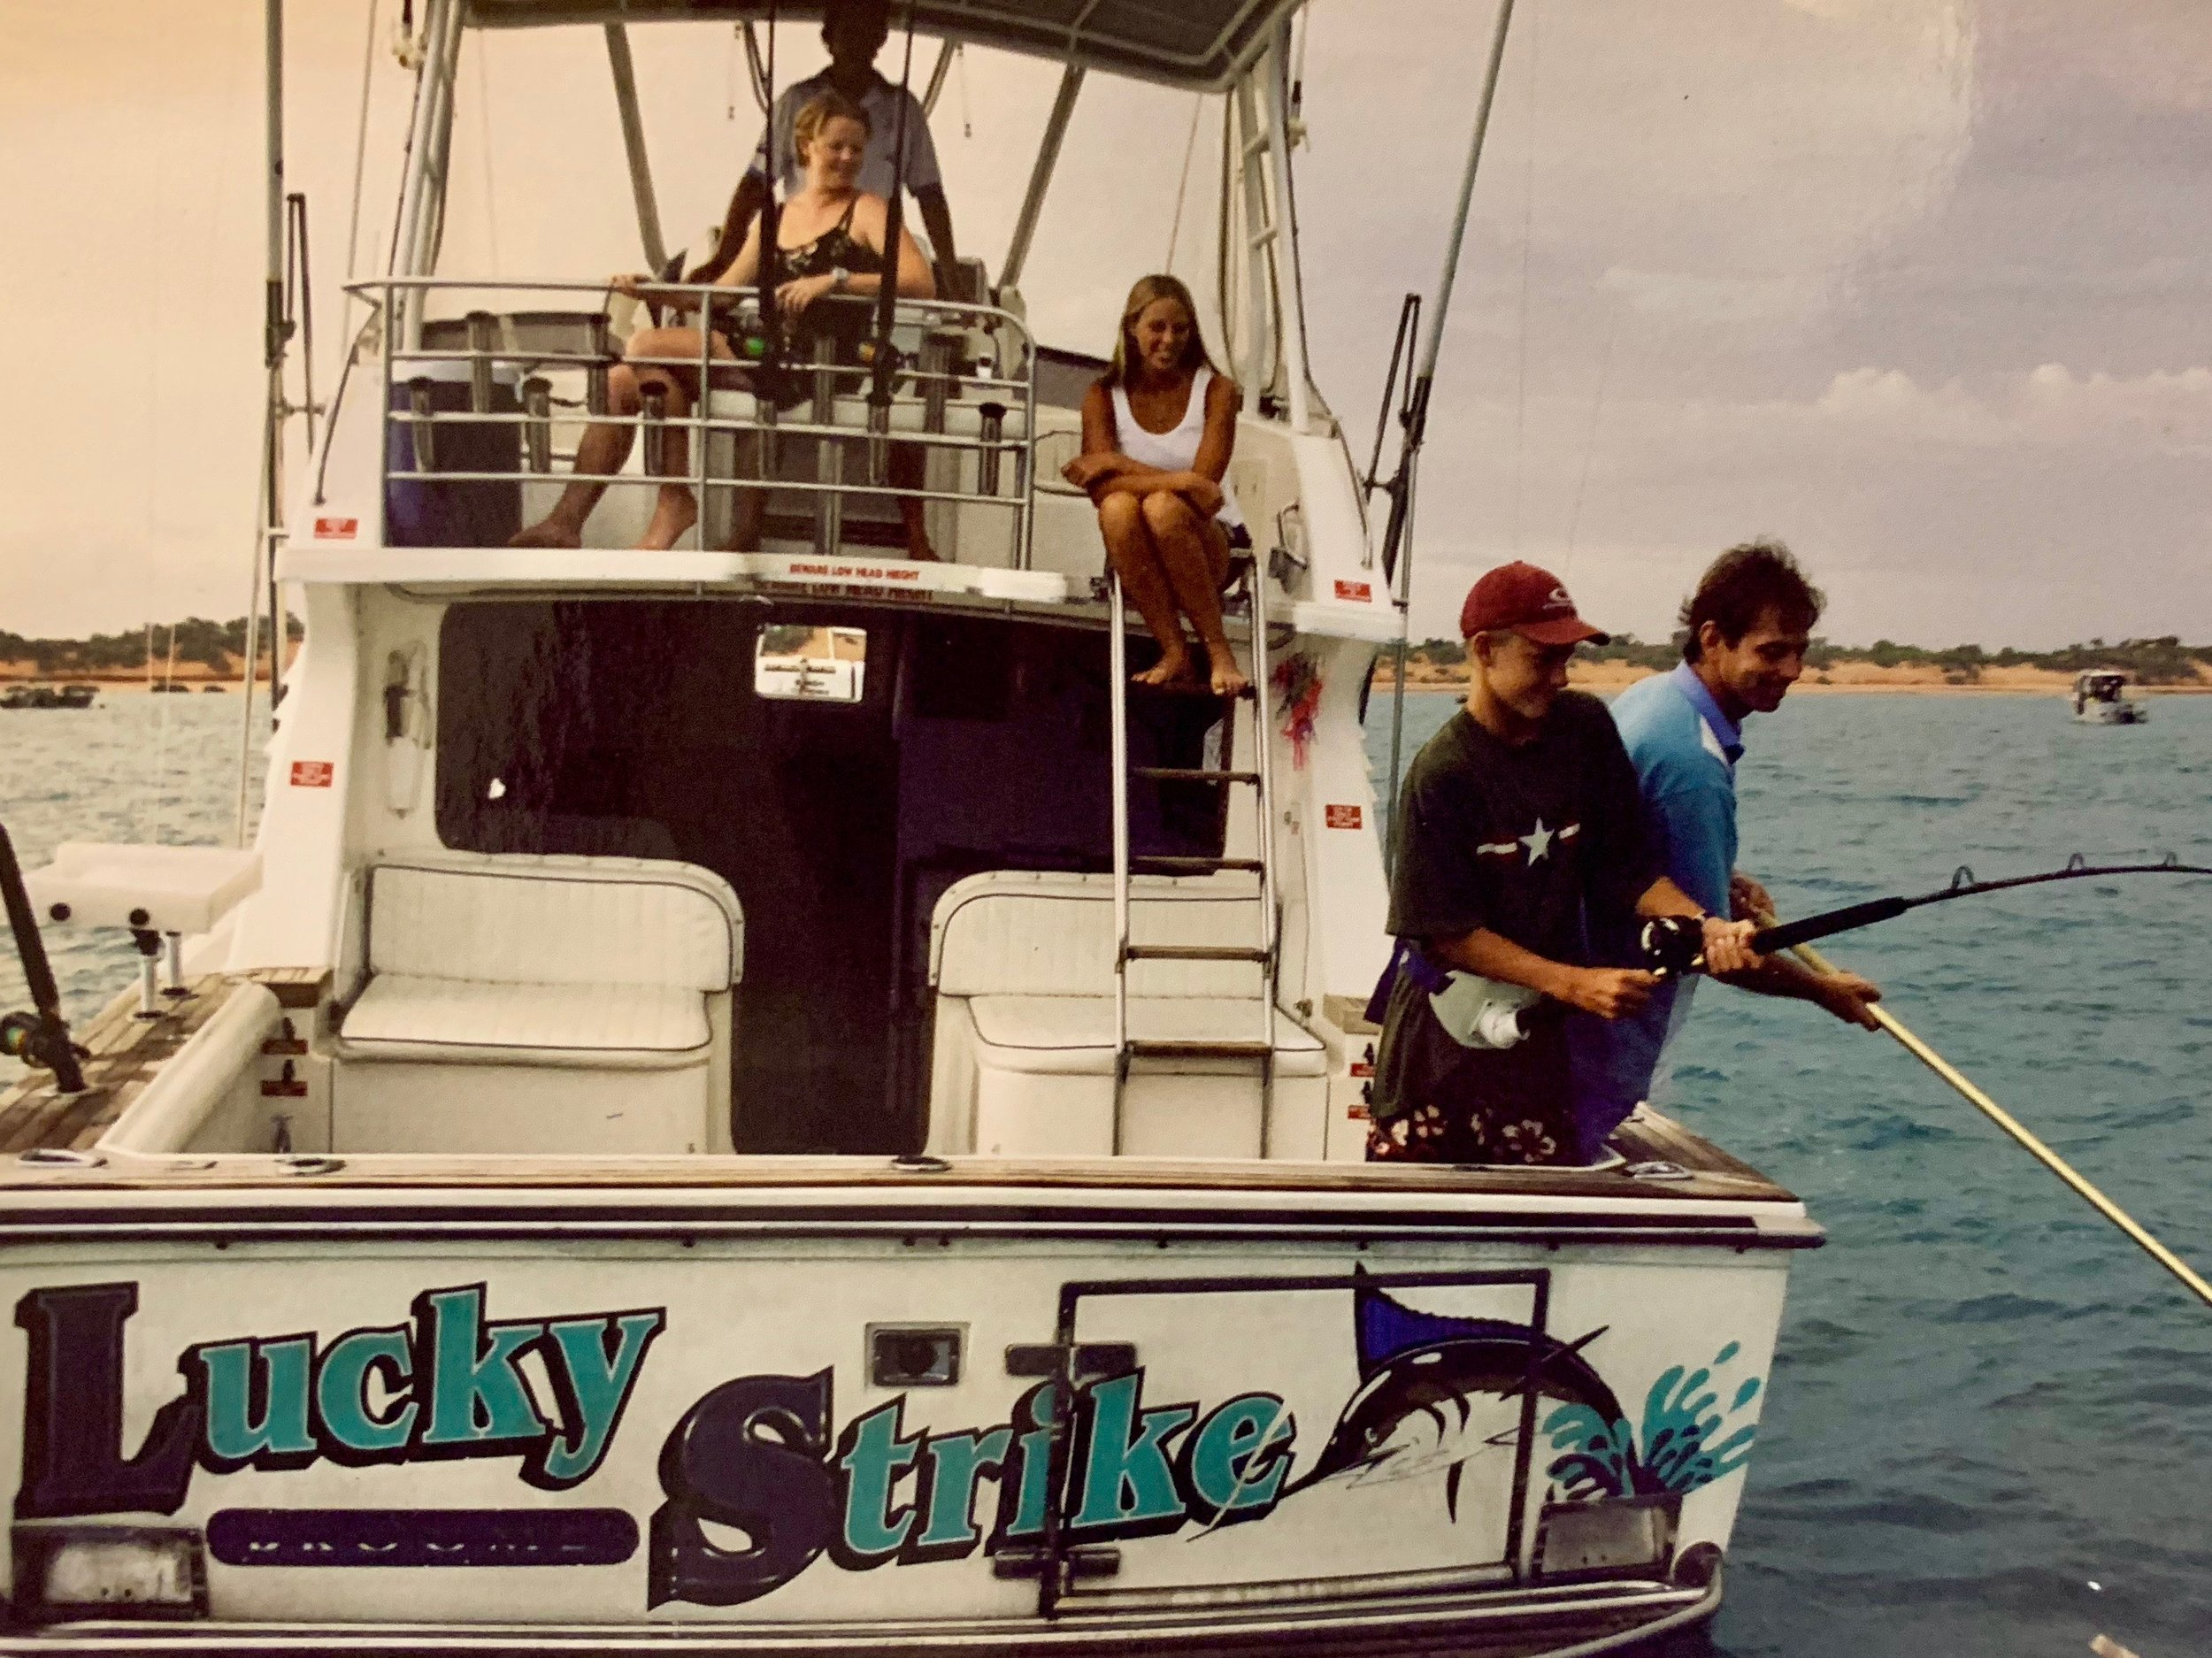 Age 14, fishing with dad and Liss (sister)